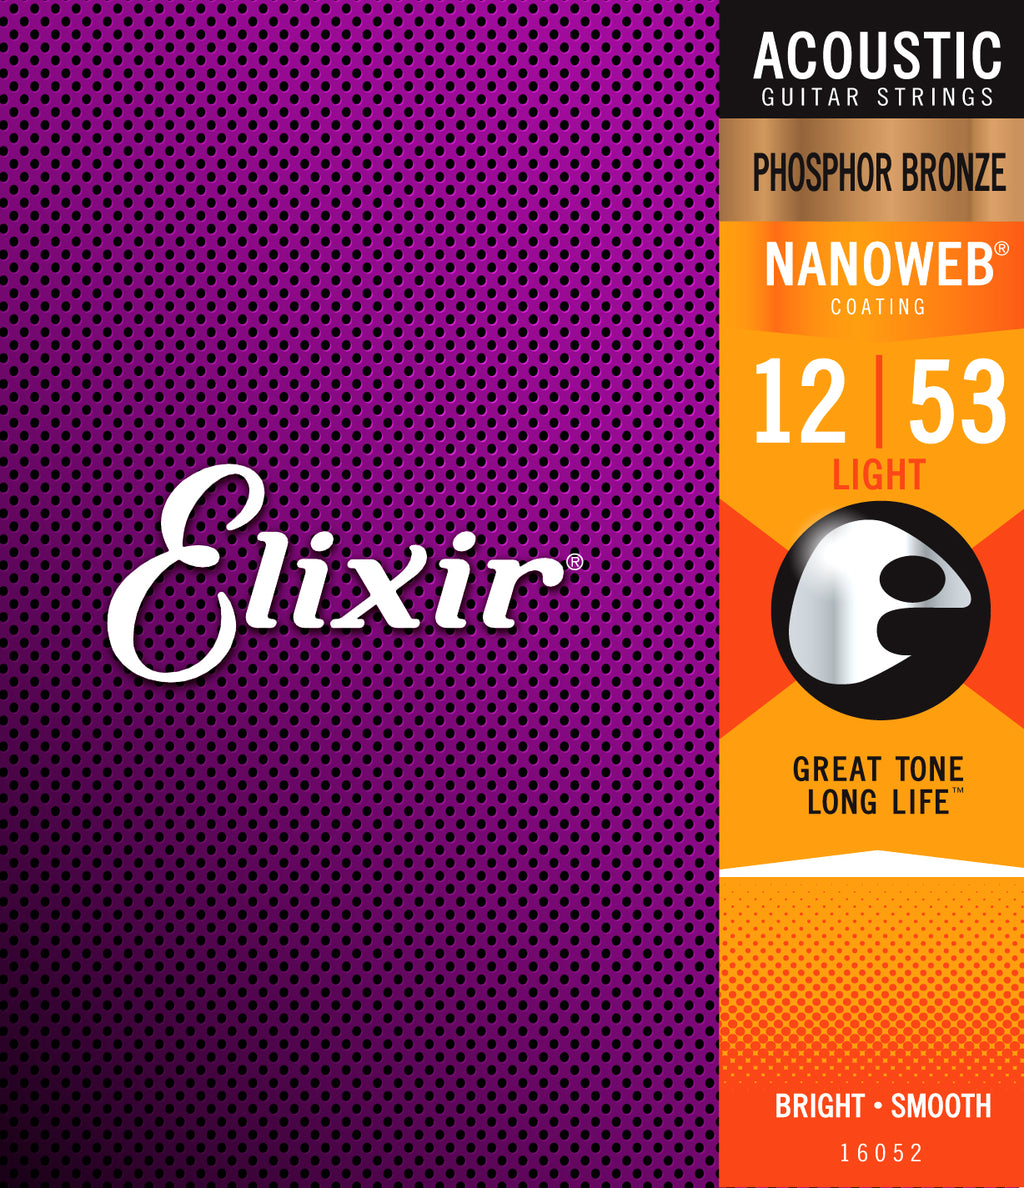 Elixir 16052 Light NanoWeb Phosphor Bronze Acoustic Guitar Strings  (12-53)